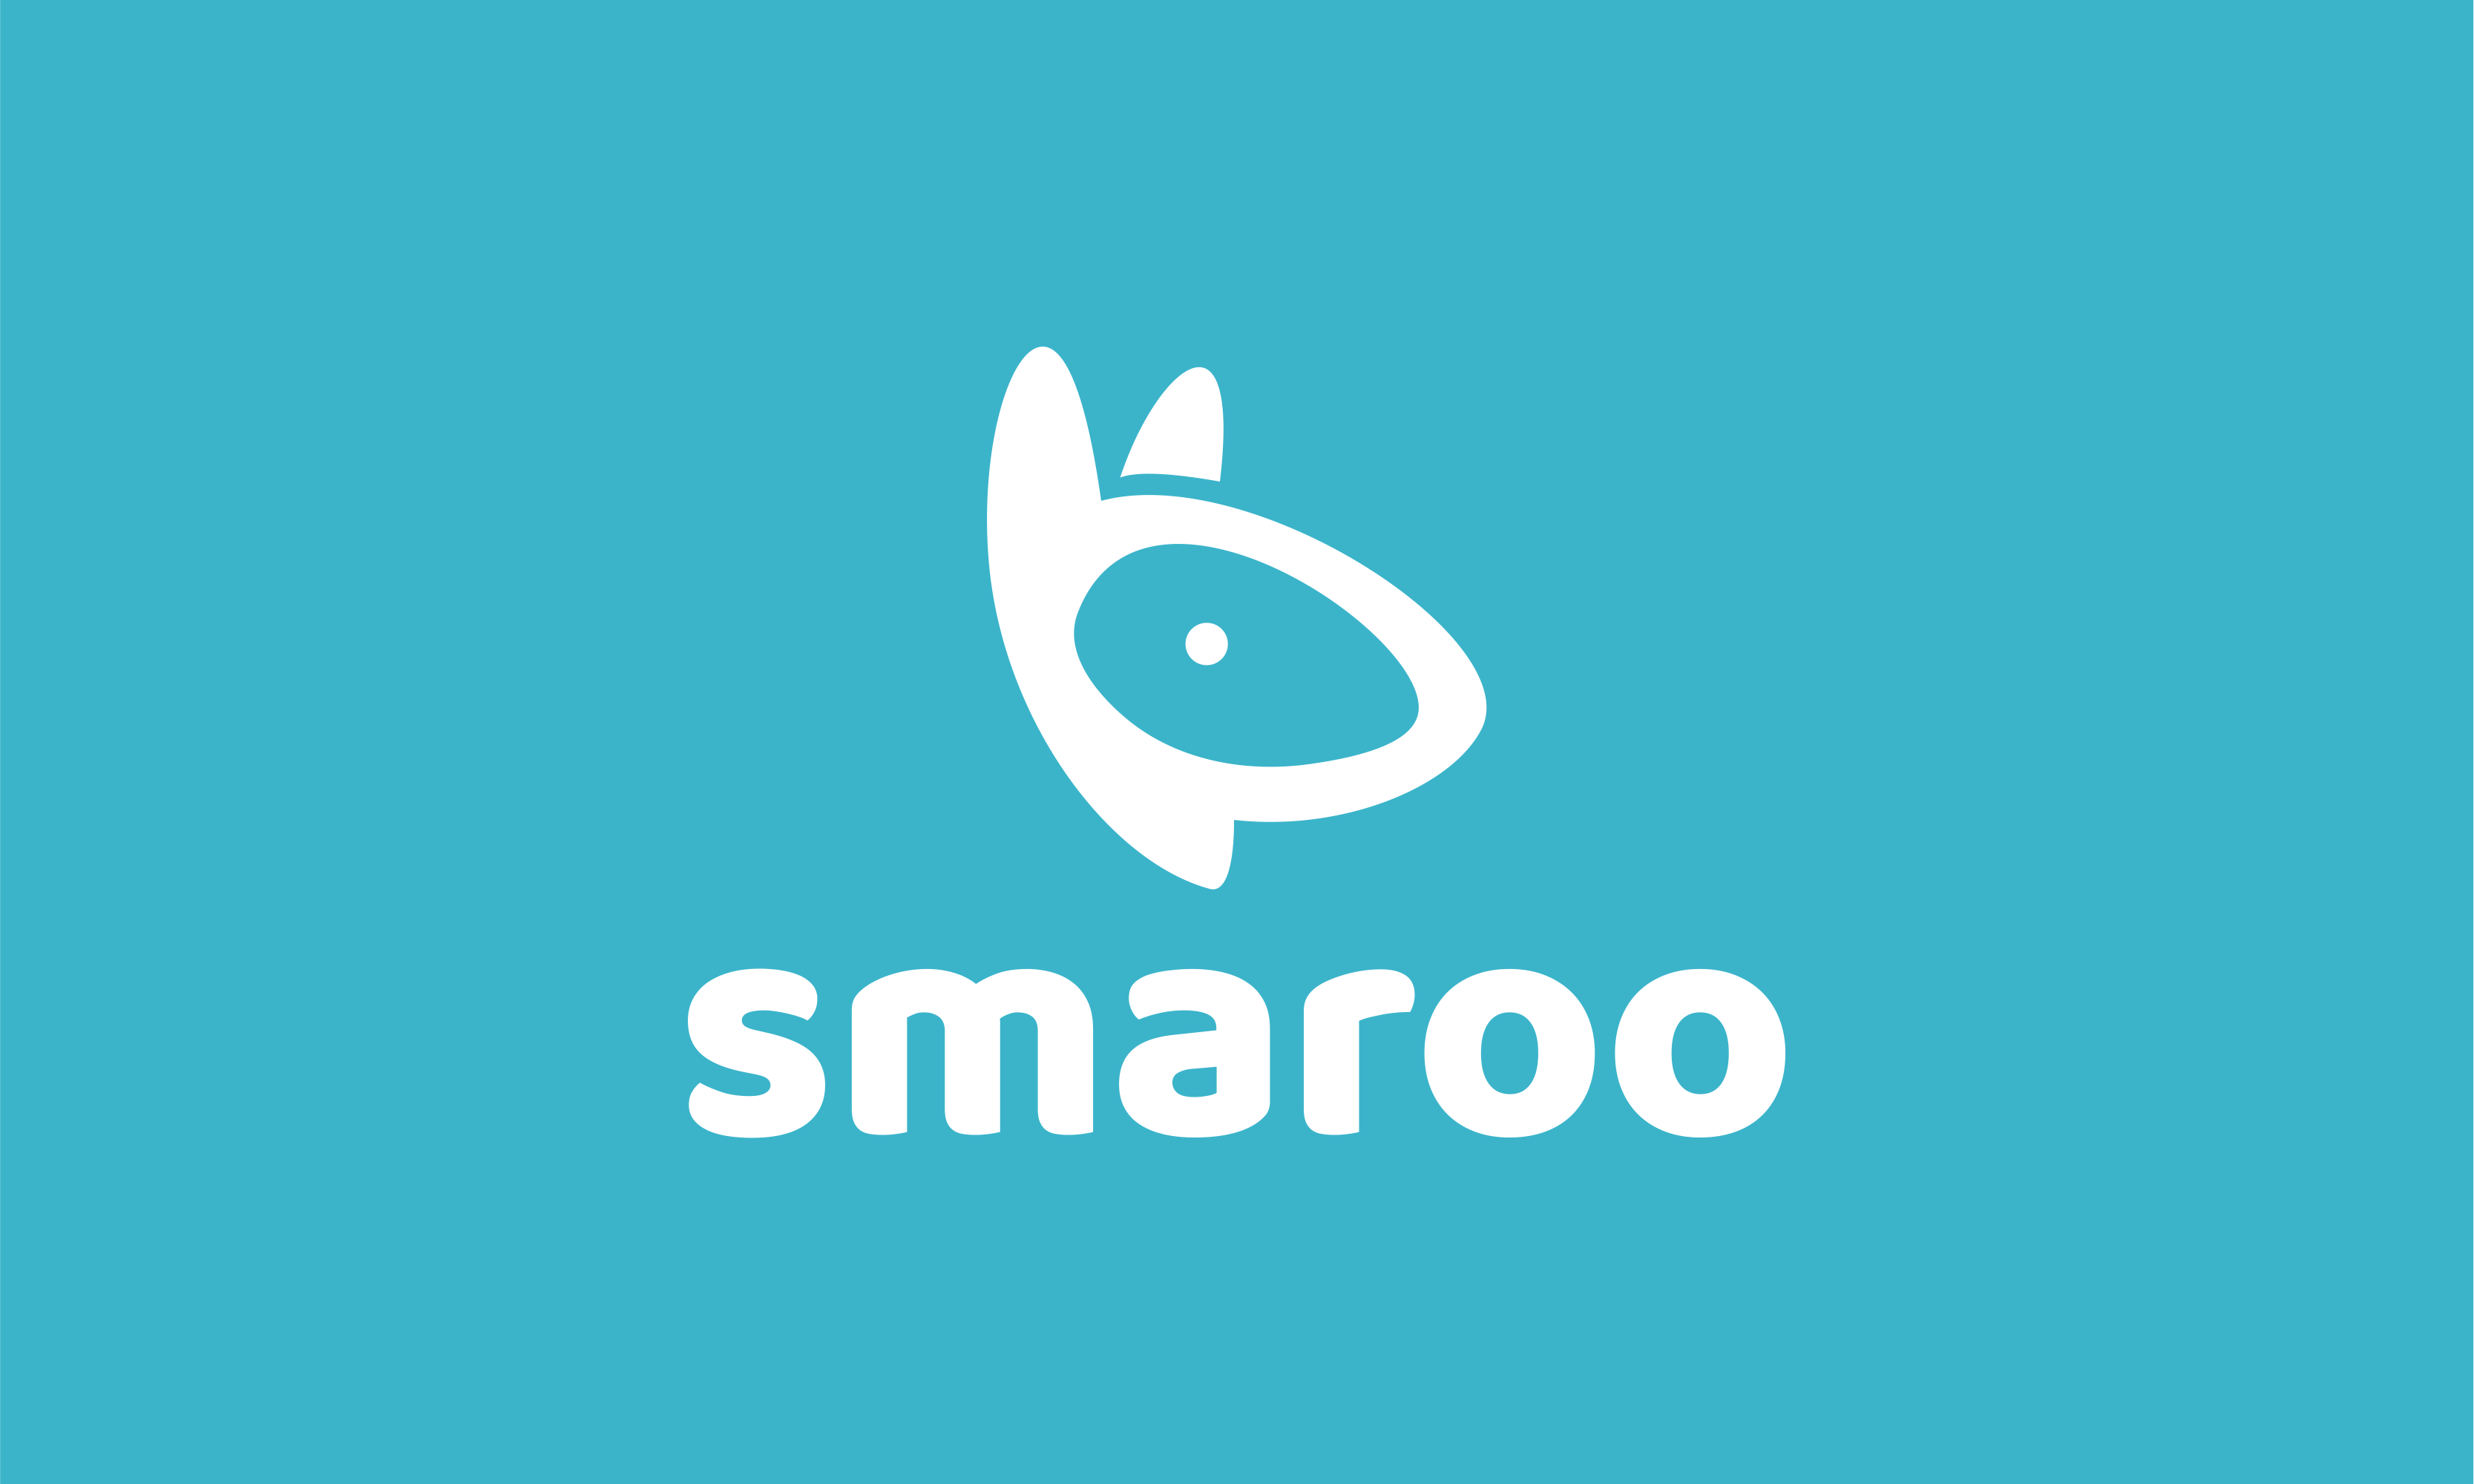 Smaroo - Social domain name for sale